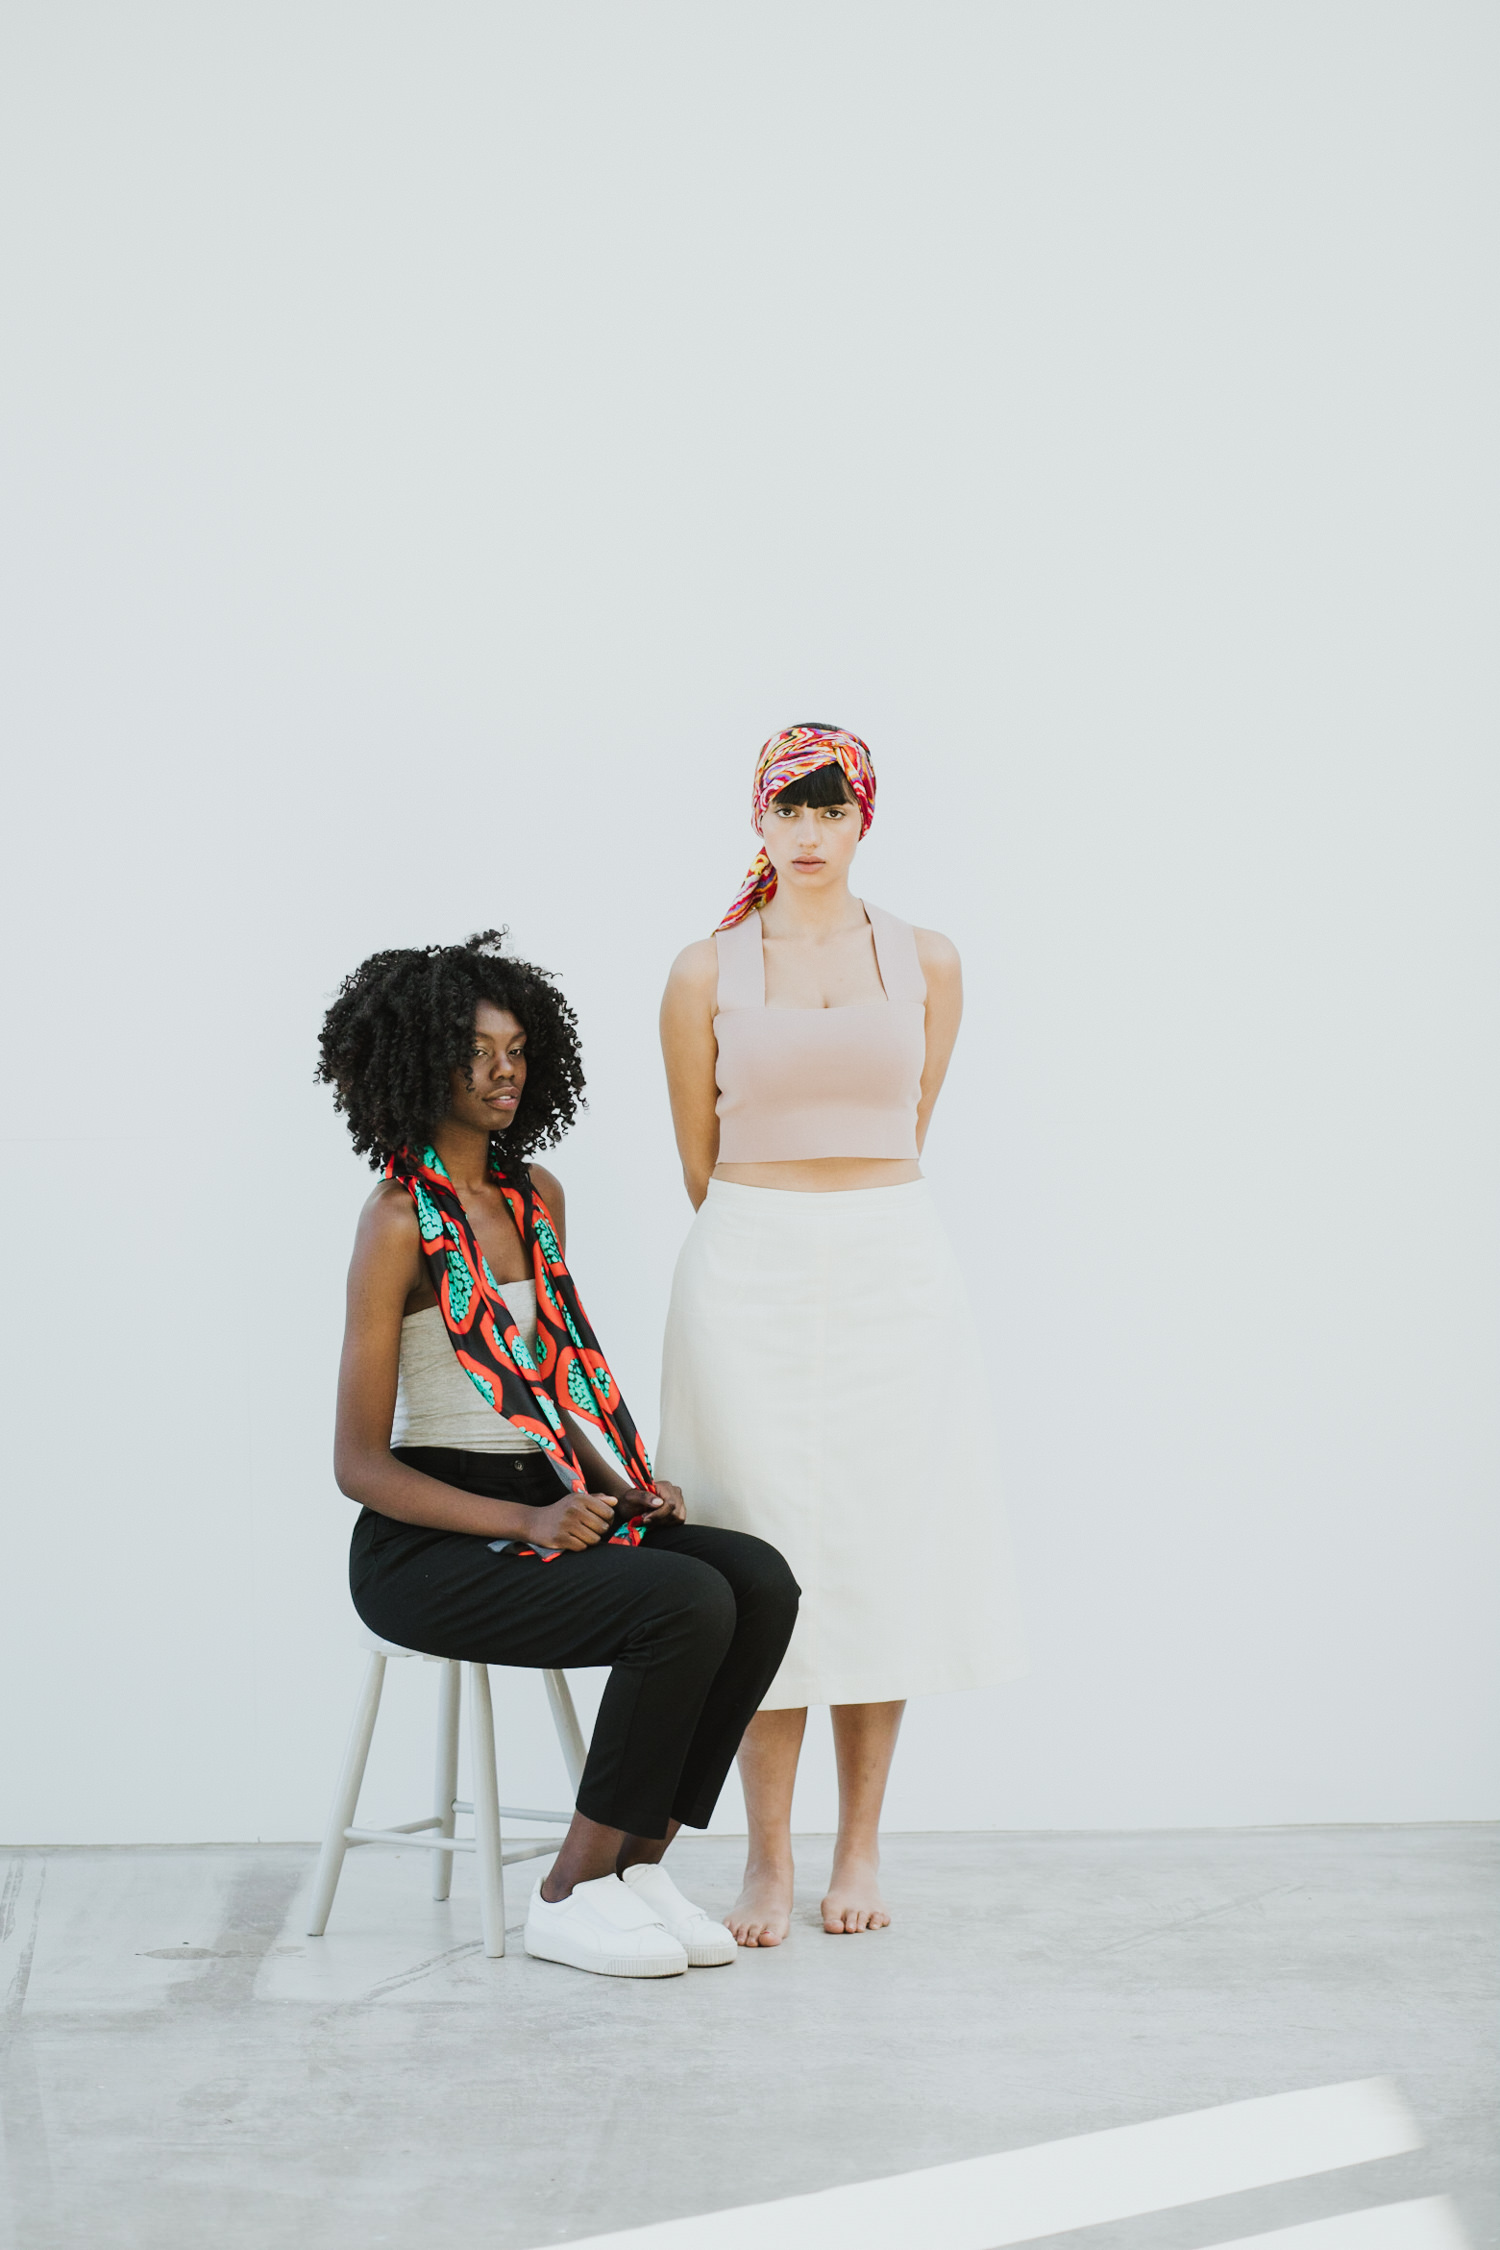 Art + Fashion: photography by Jenny Wu at Nishi Gallery New Acton